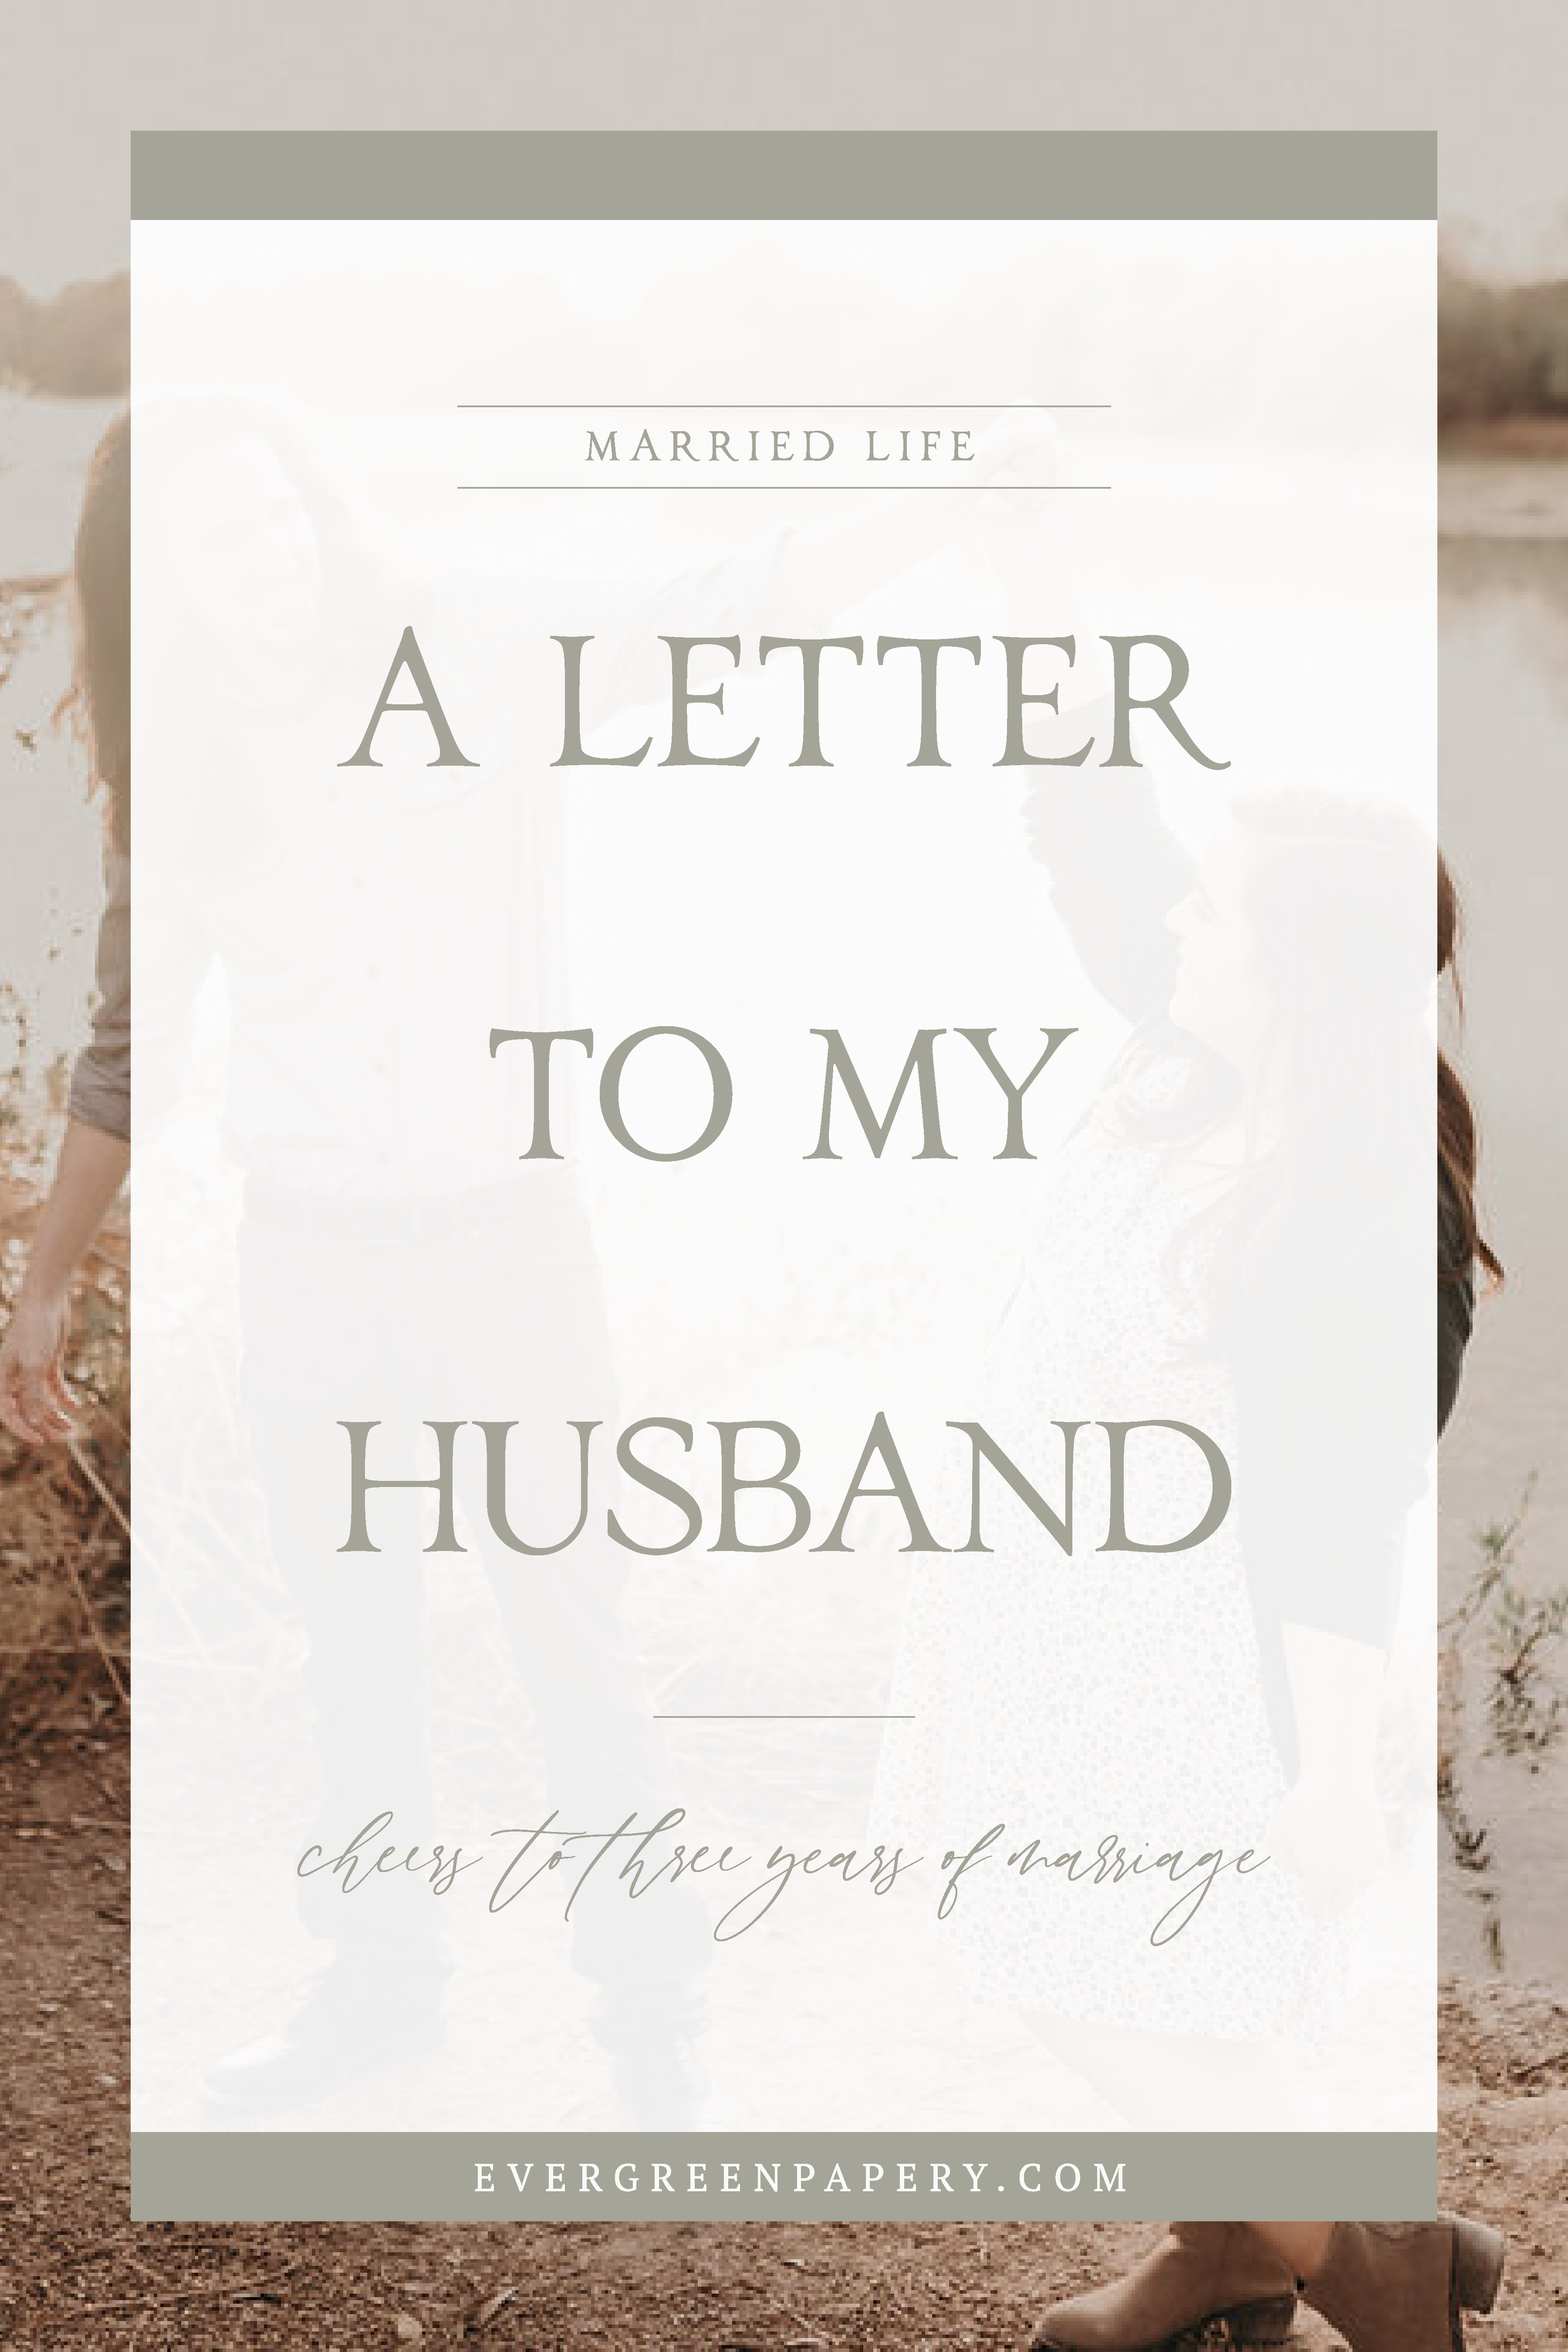 Letter To My Husband Our Third Wedding Anniversary Marriage